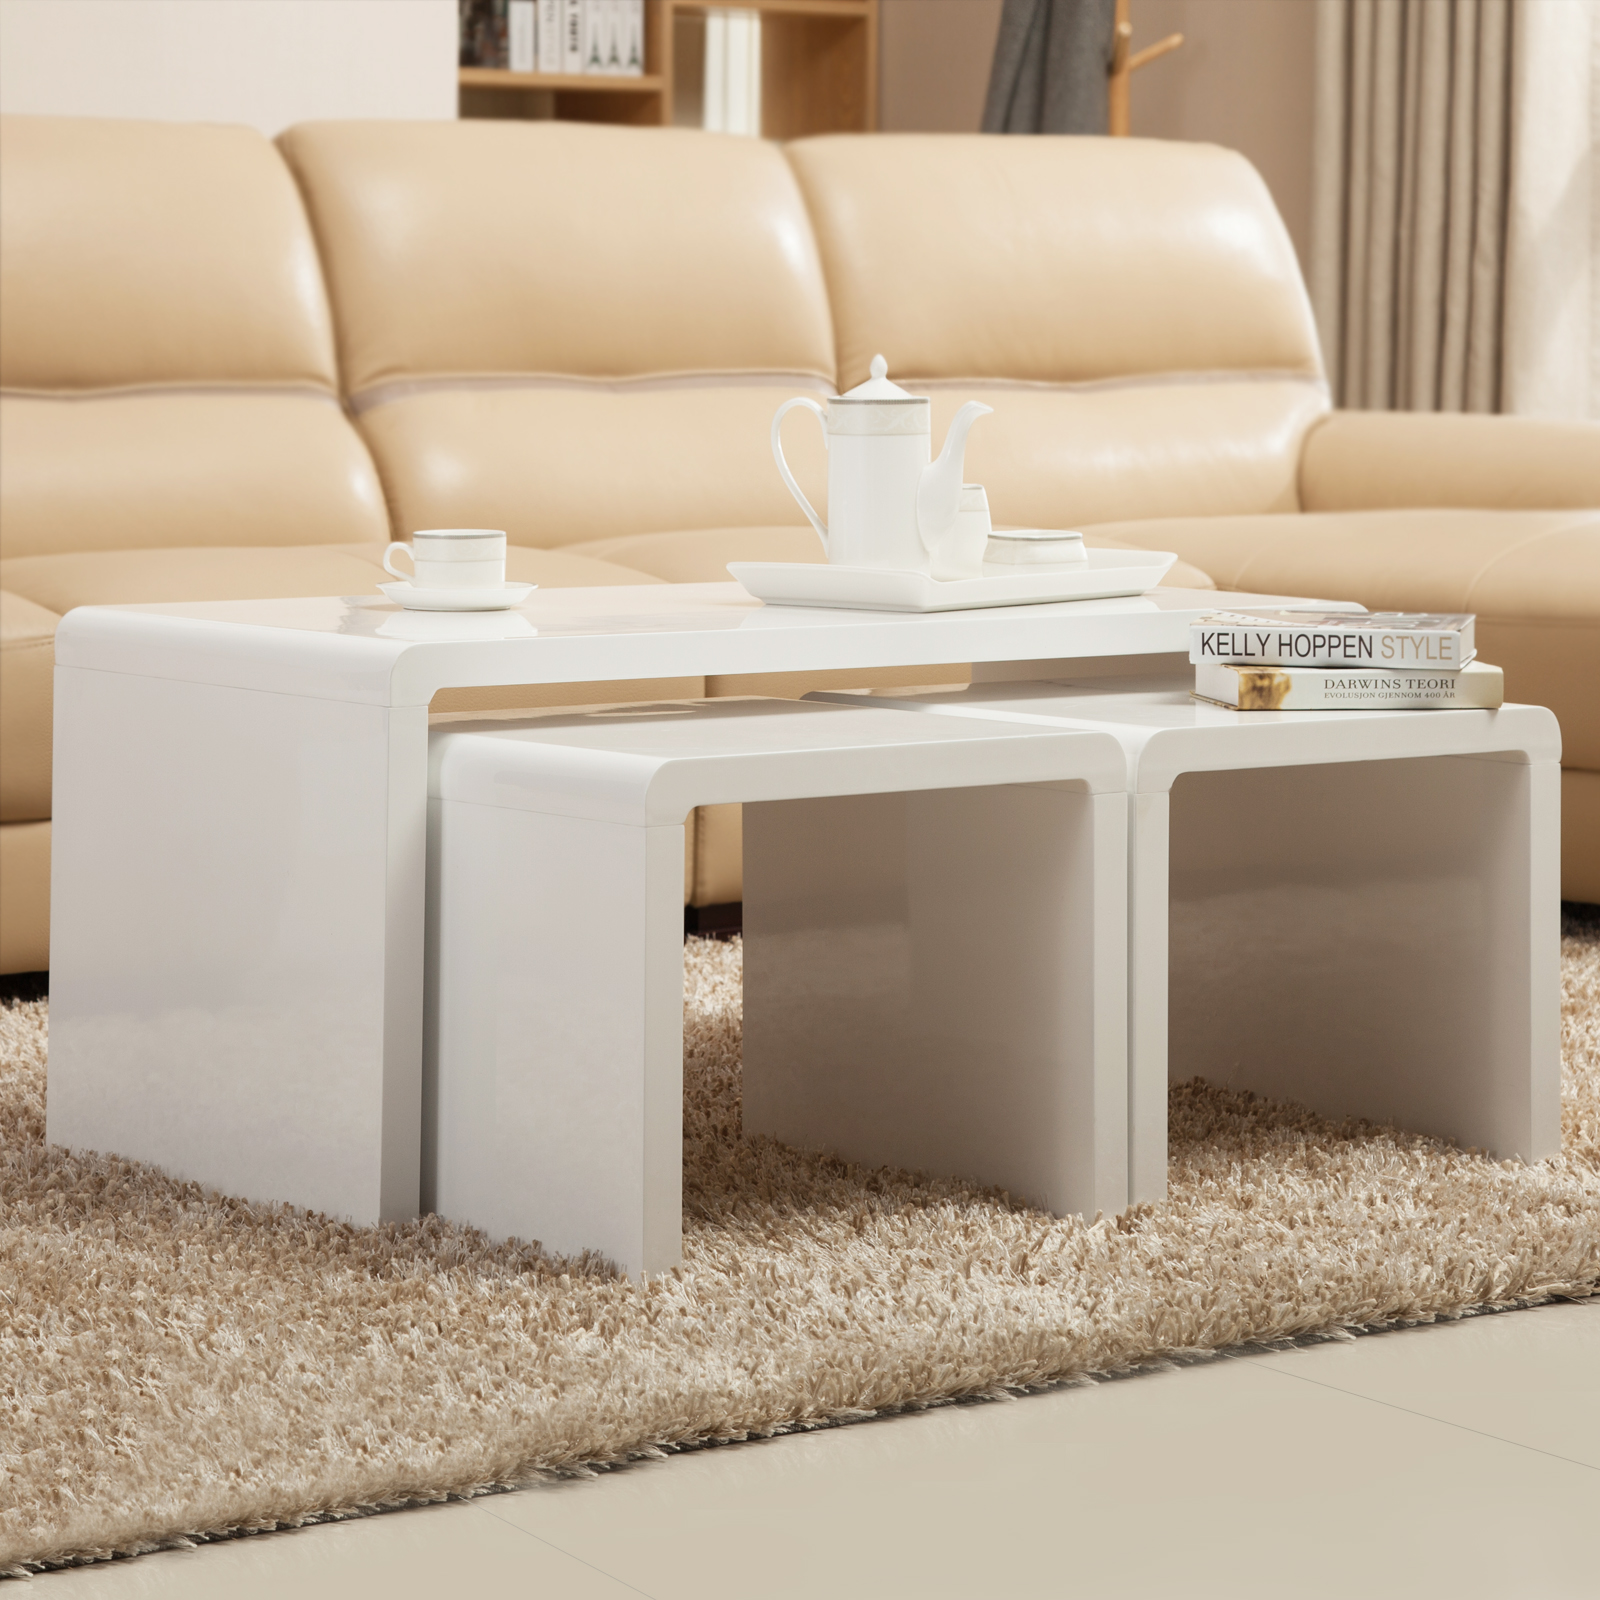 High gloss white coffee table side end table set of 2 living room furniture for White end tables for living room